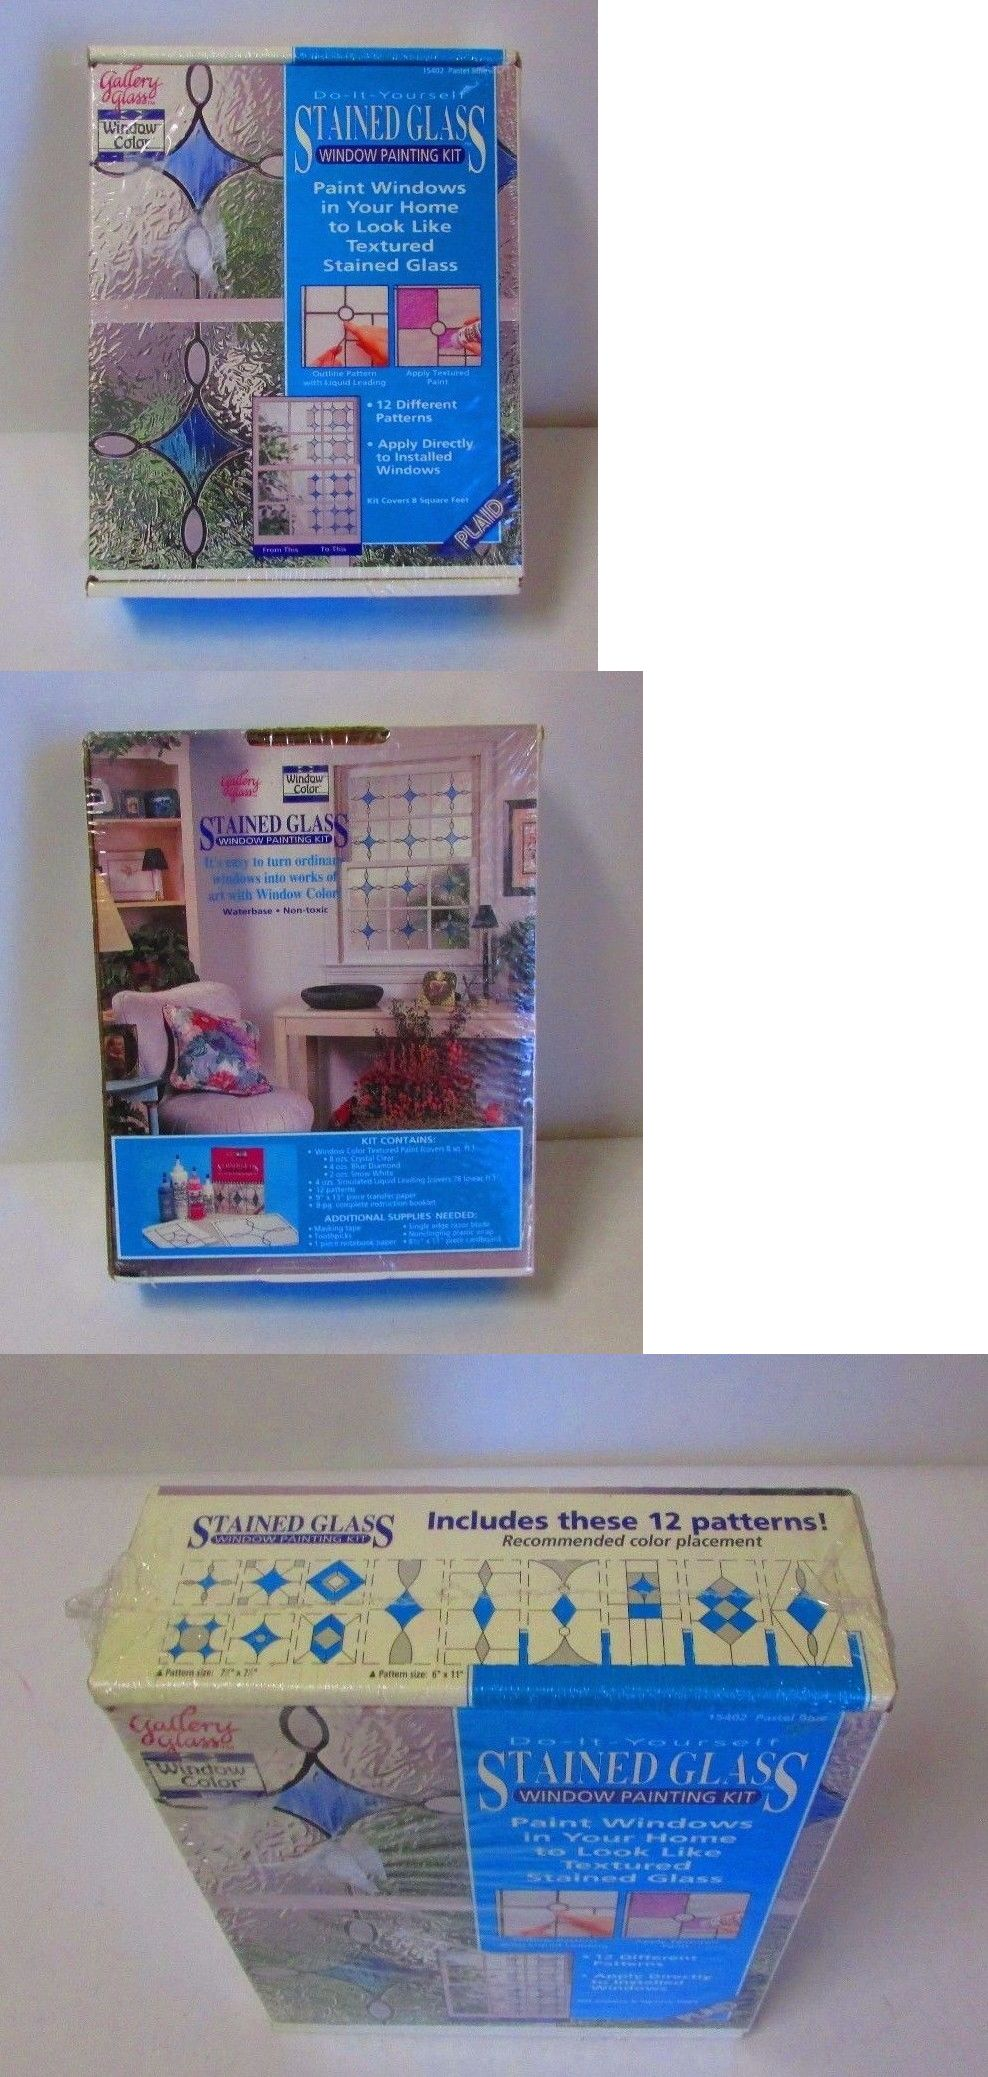 Books and videos 117402 do it yourself stained glass window books and videos 117402 do it yourself stained glass window painting kit 15402 solutioingenieria Image collections